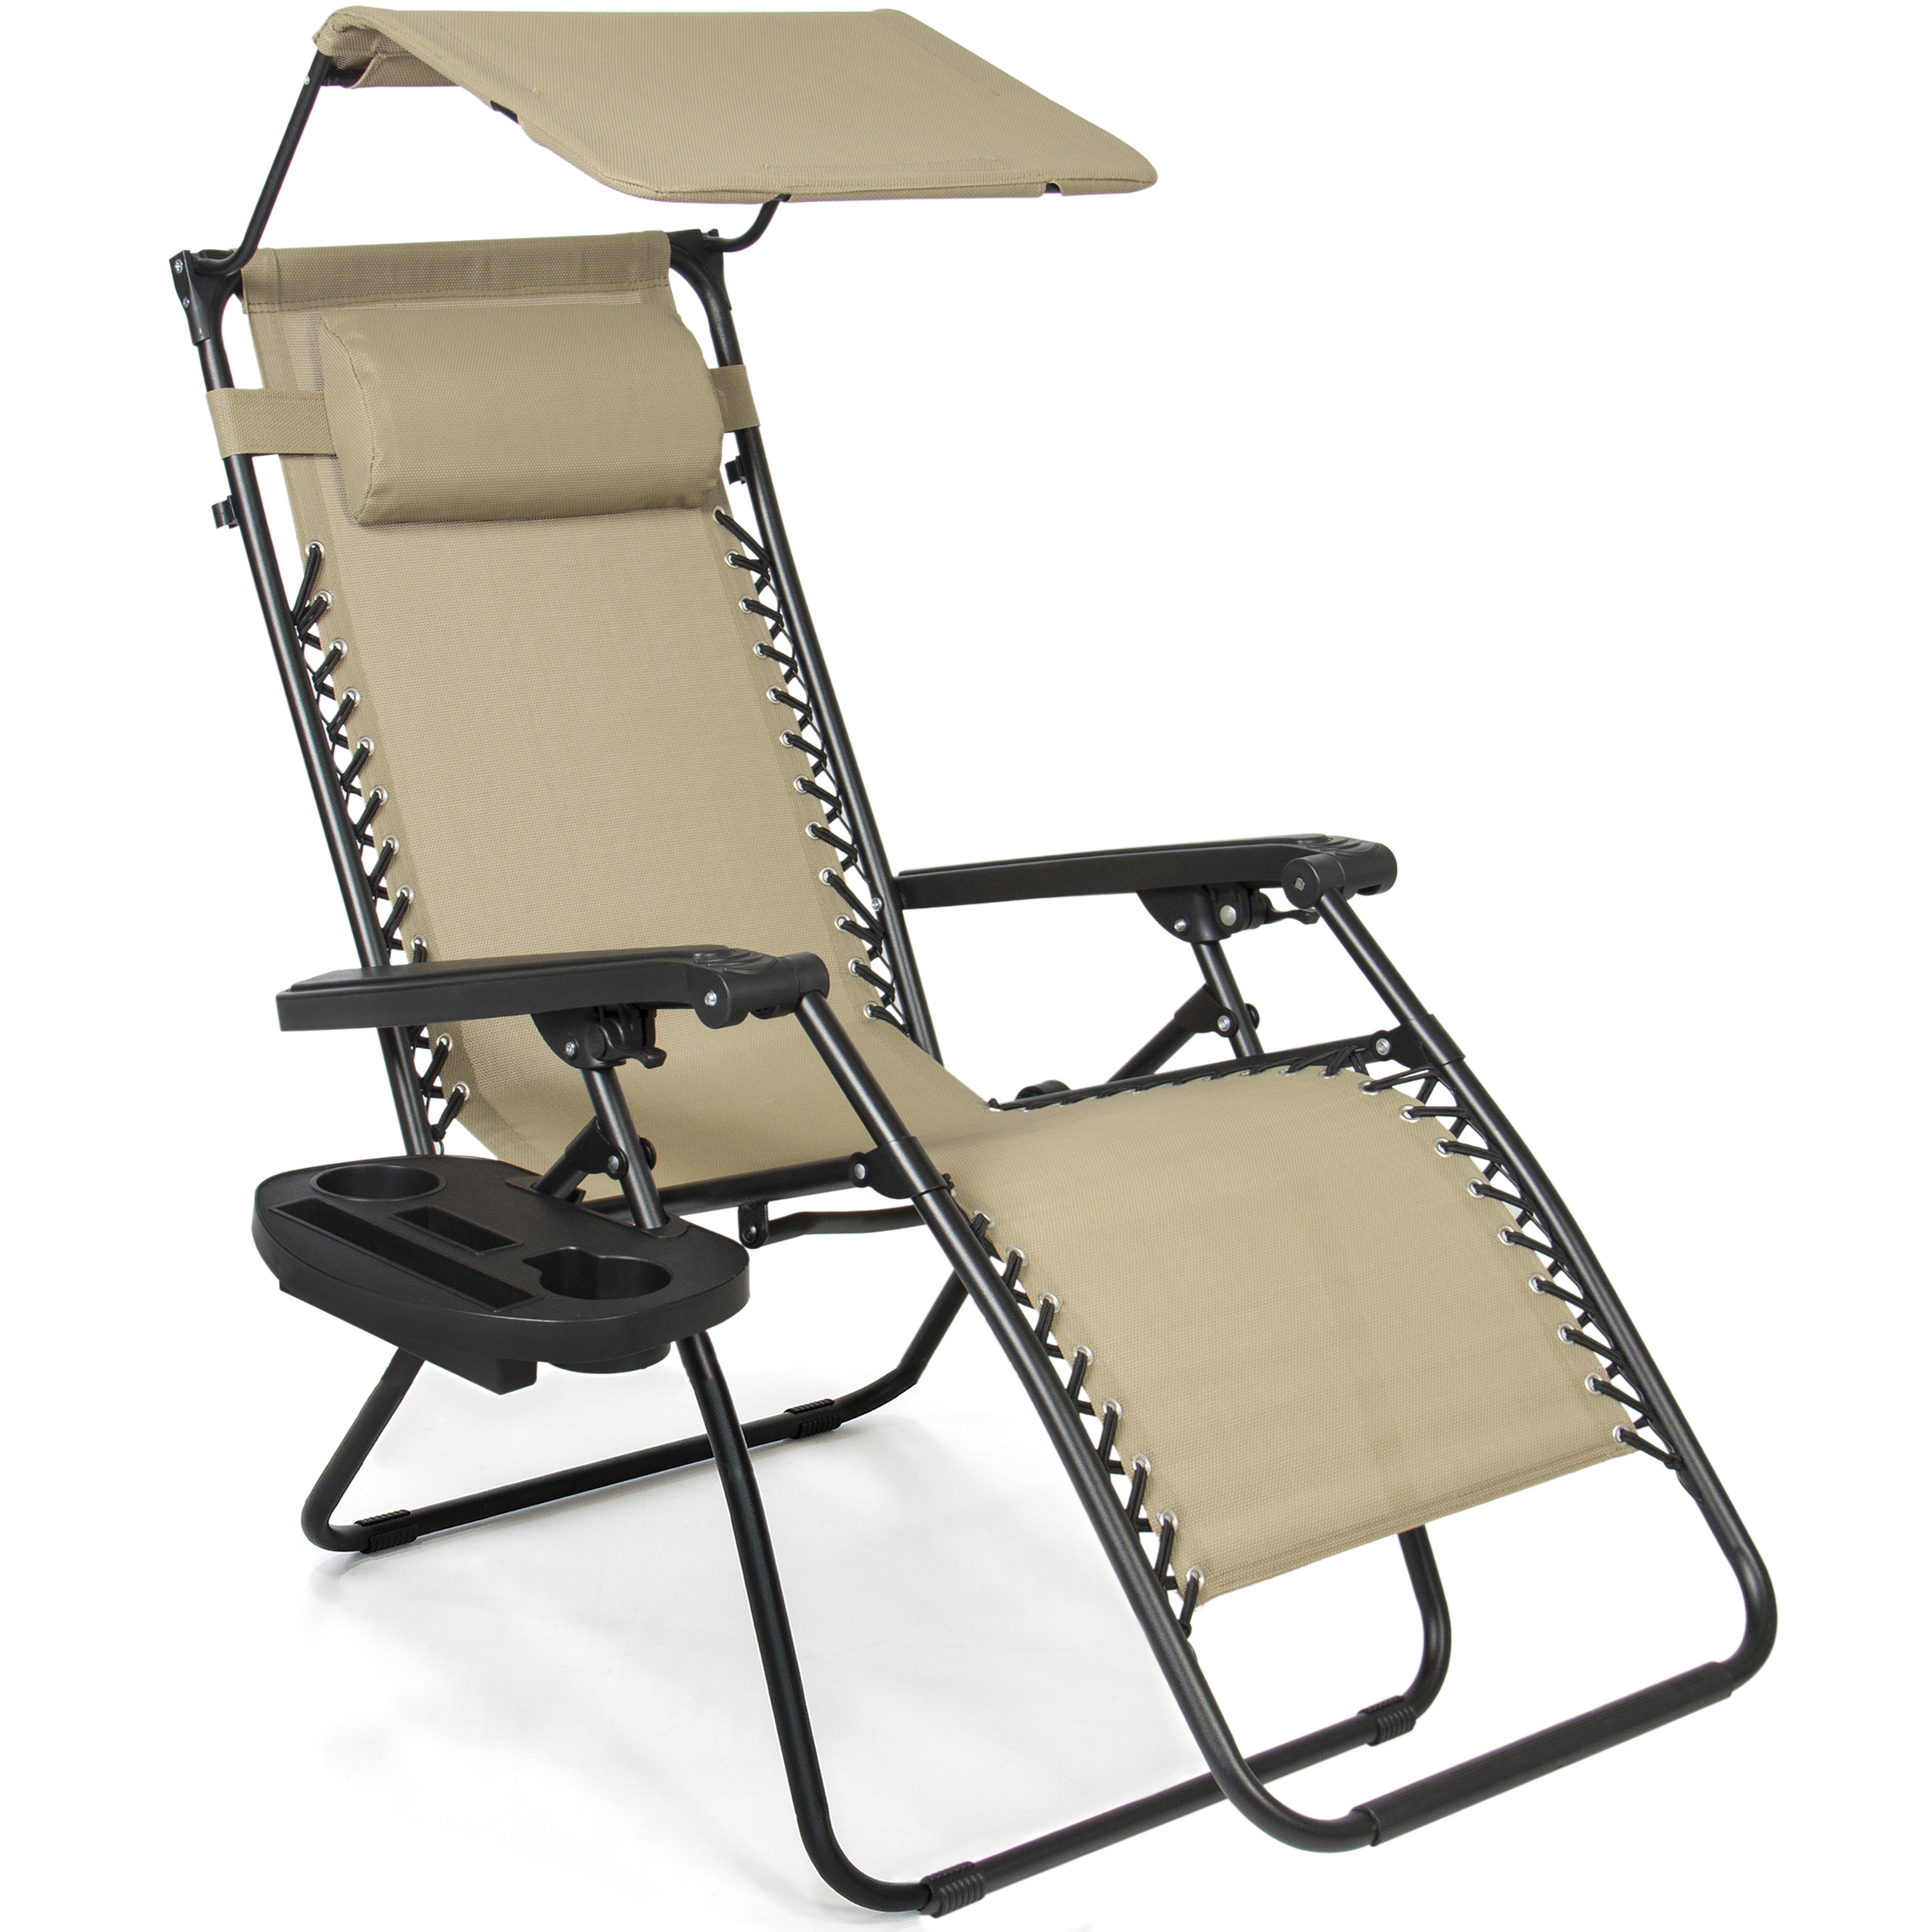 Folding Zero Gravity Recliner Lounge Chair With Canopy Shade & Magazine Cup Holder by Best Choice Products